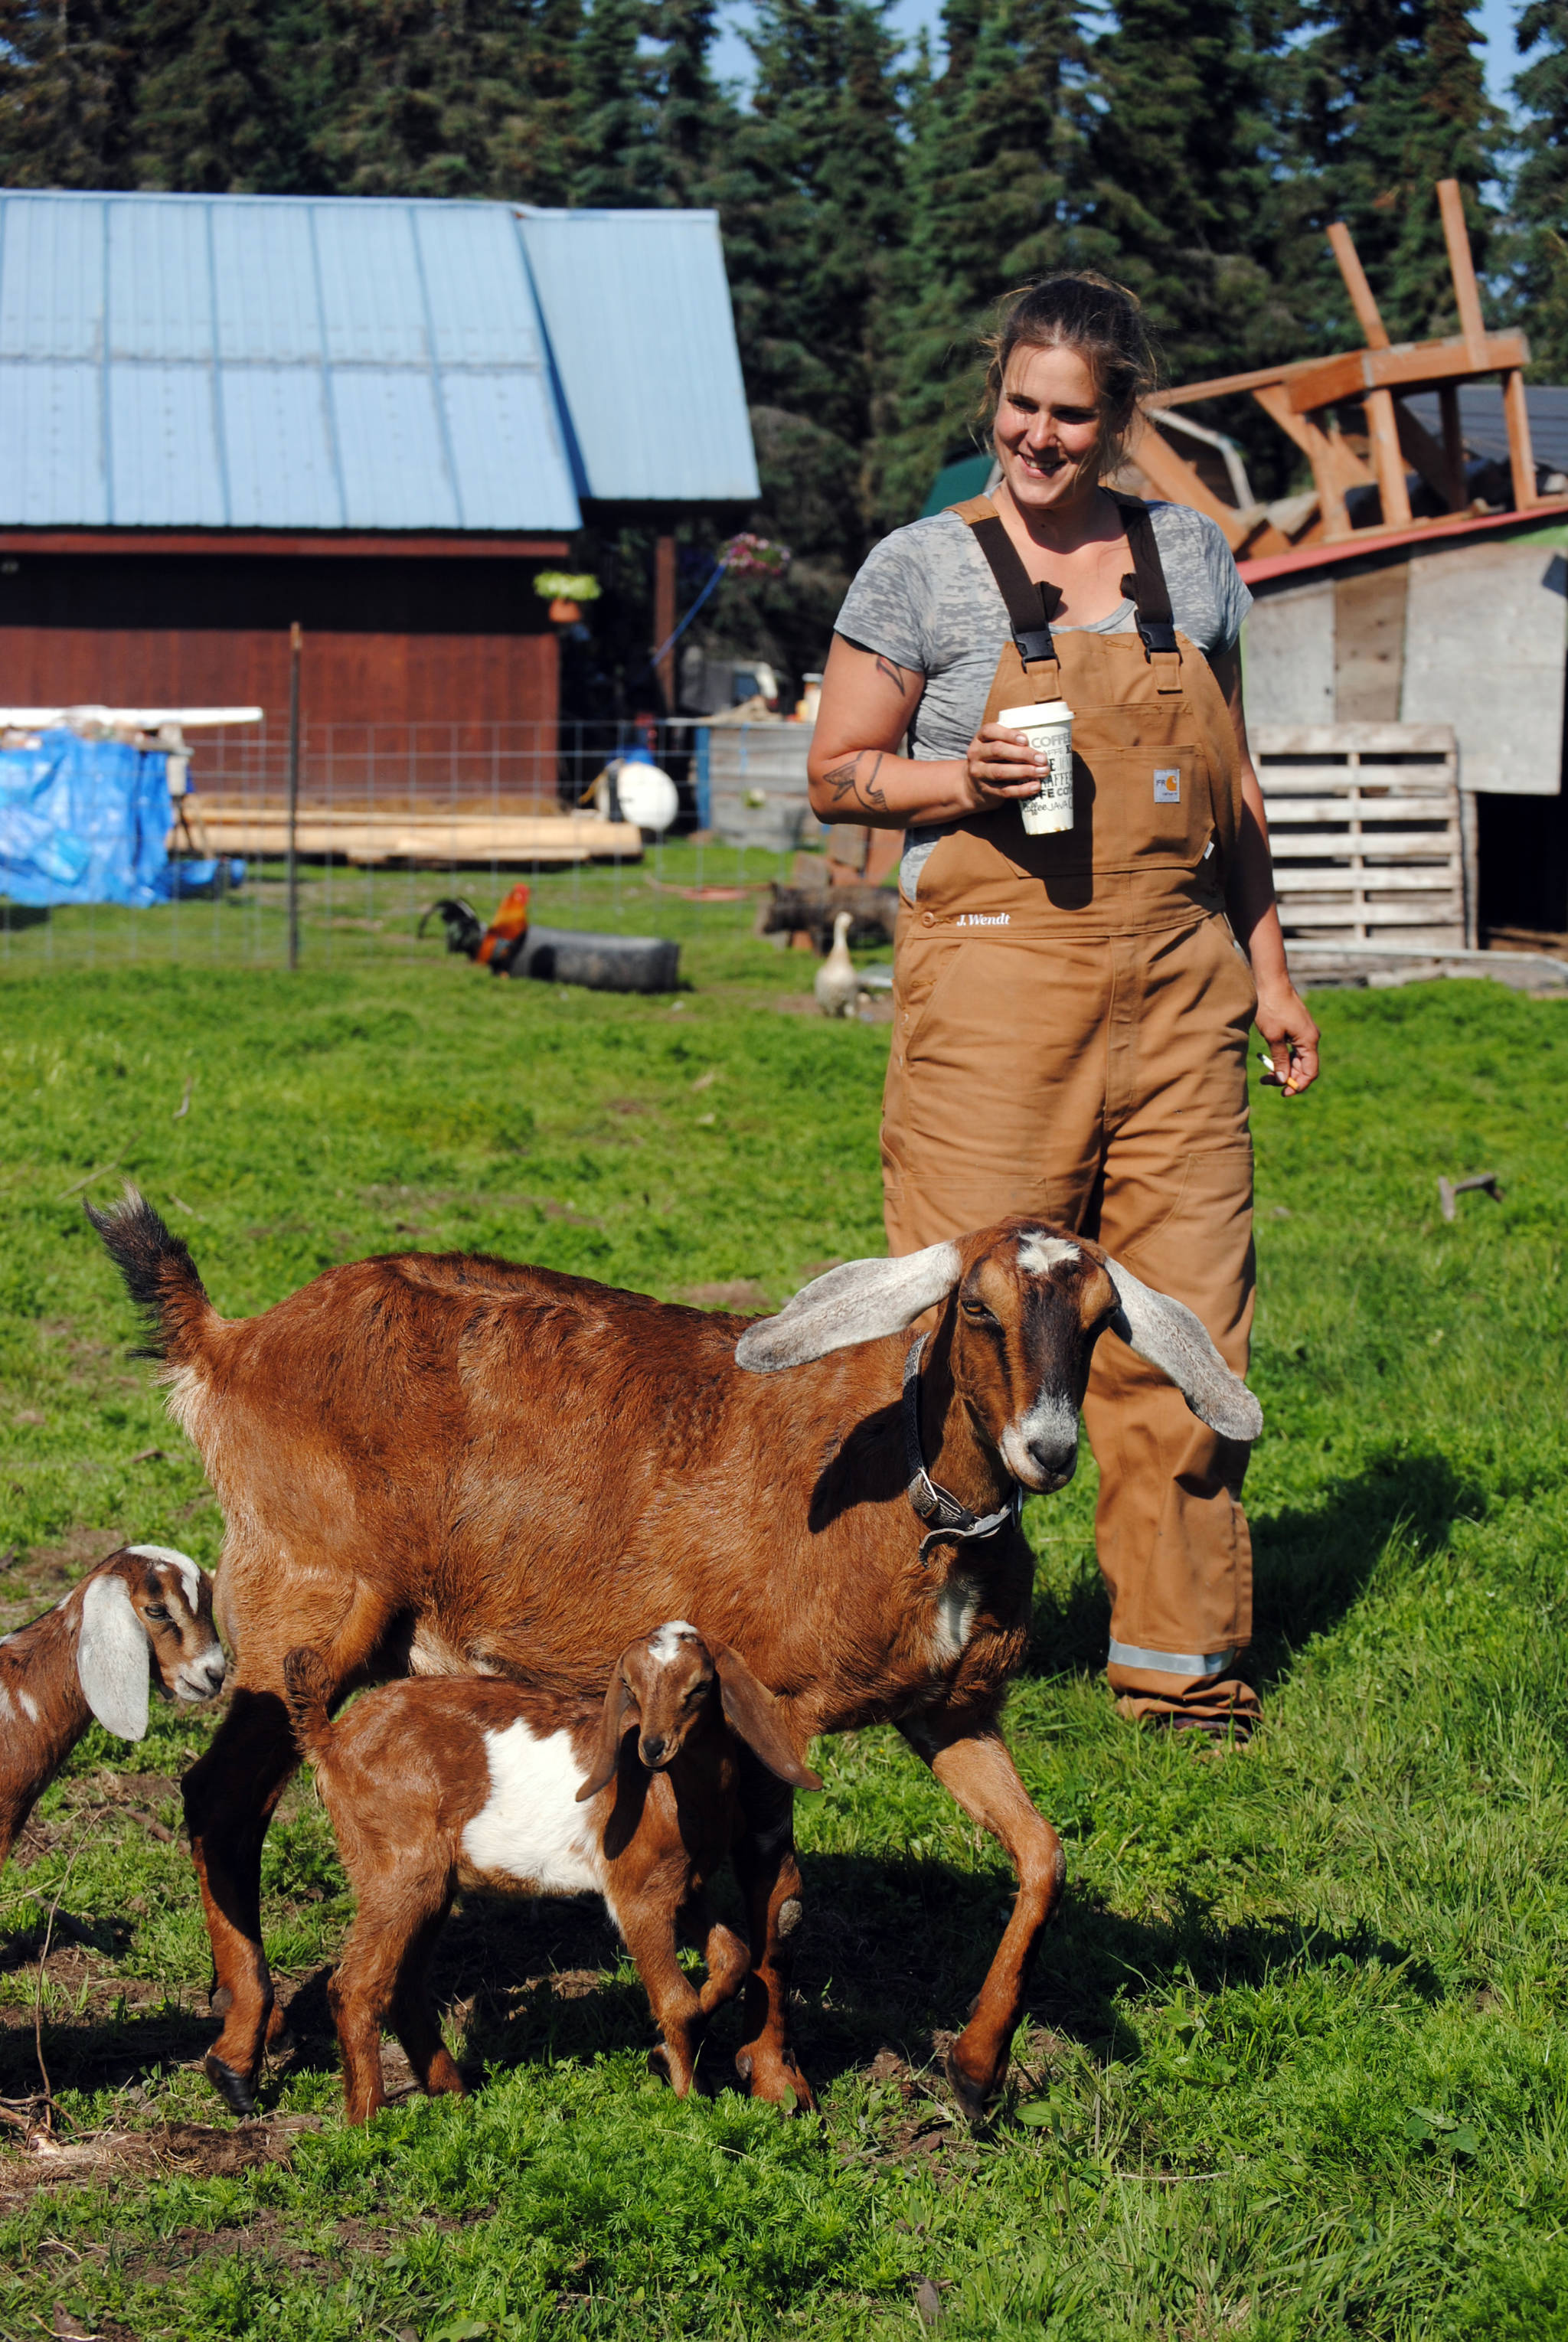 Getting your goat: Karluk Acres farm finds niche